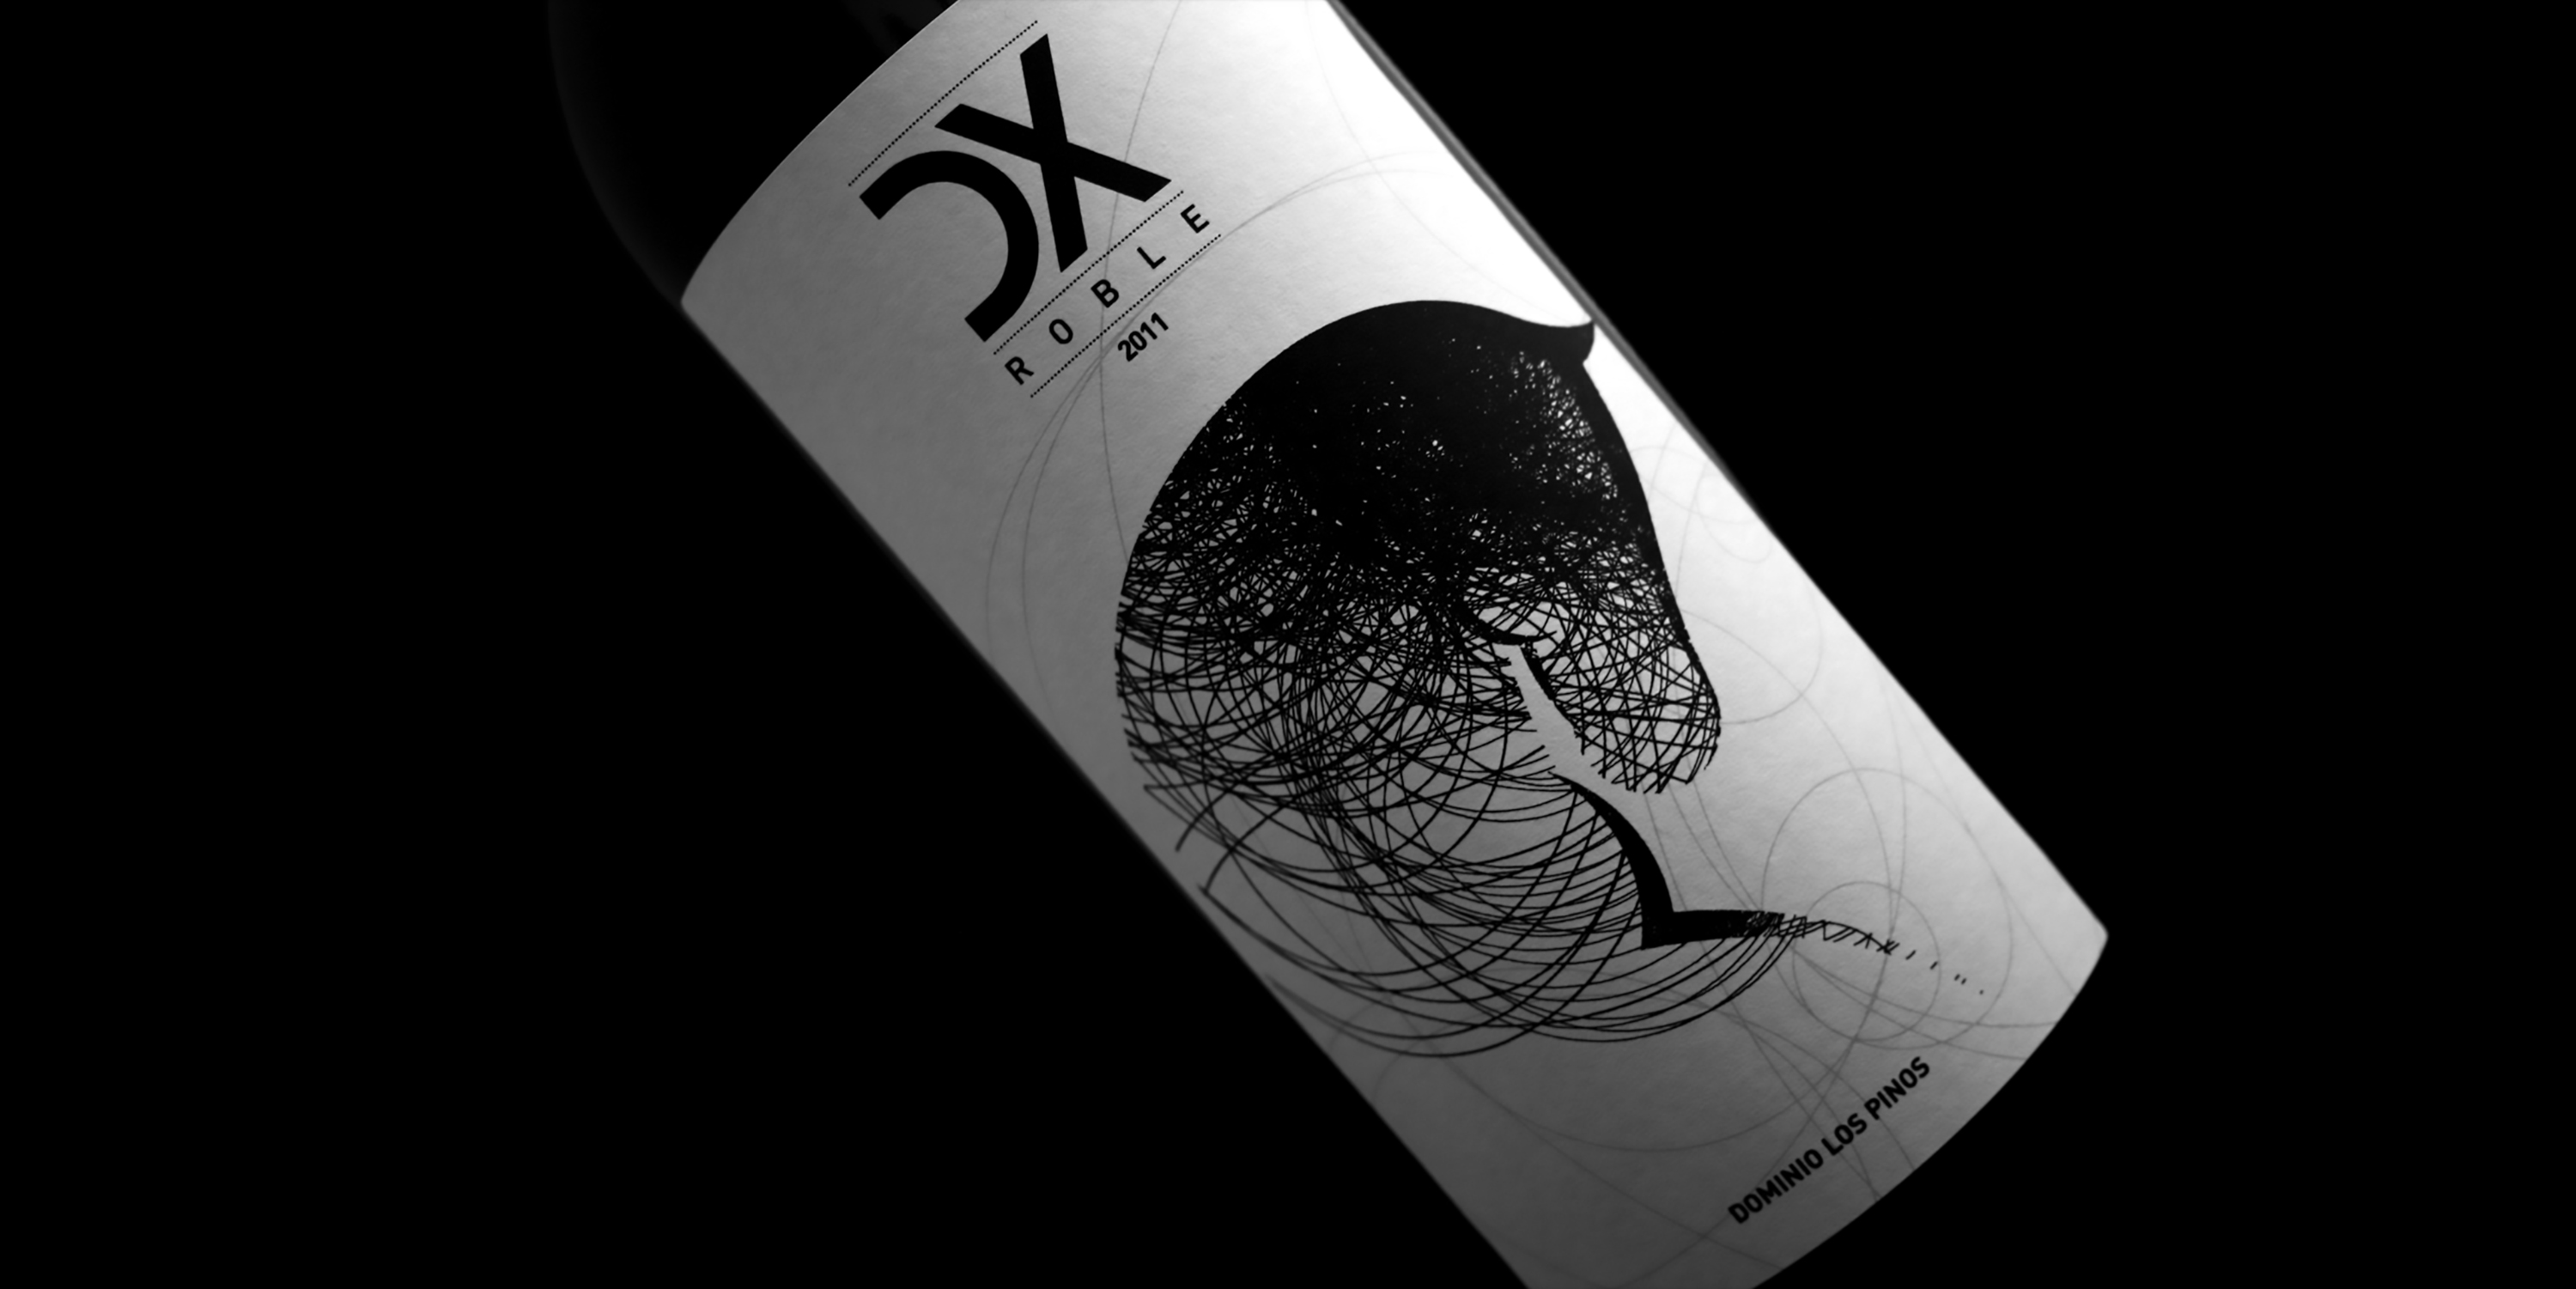 vino DX ROBLE Dominio LOS PINOS